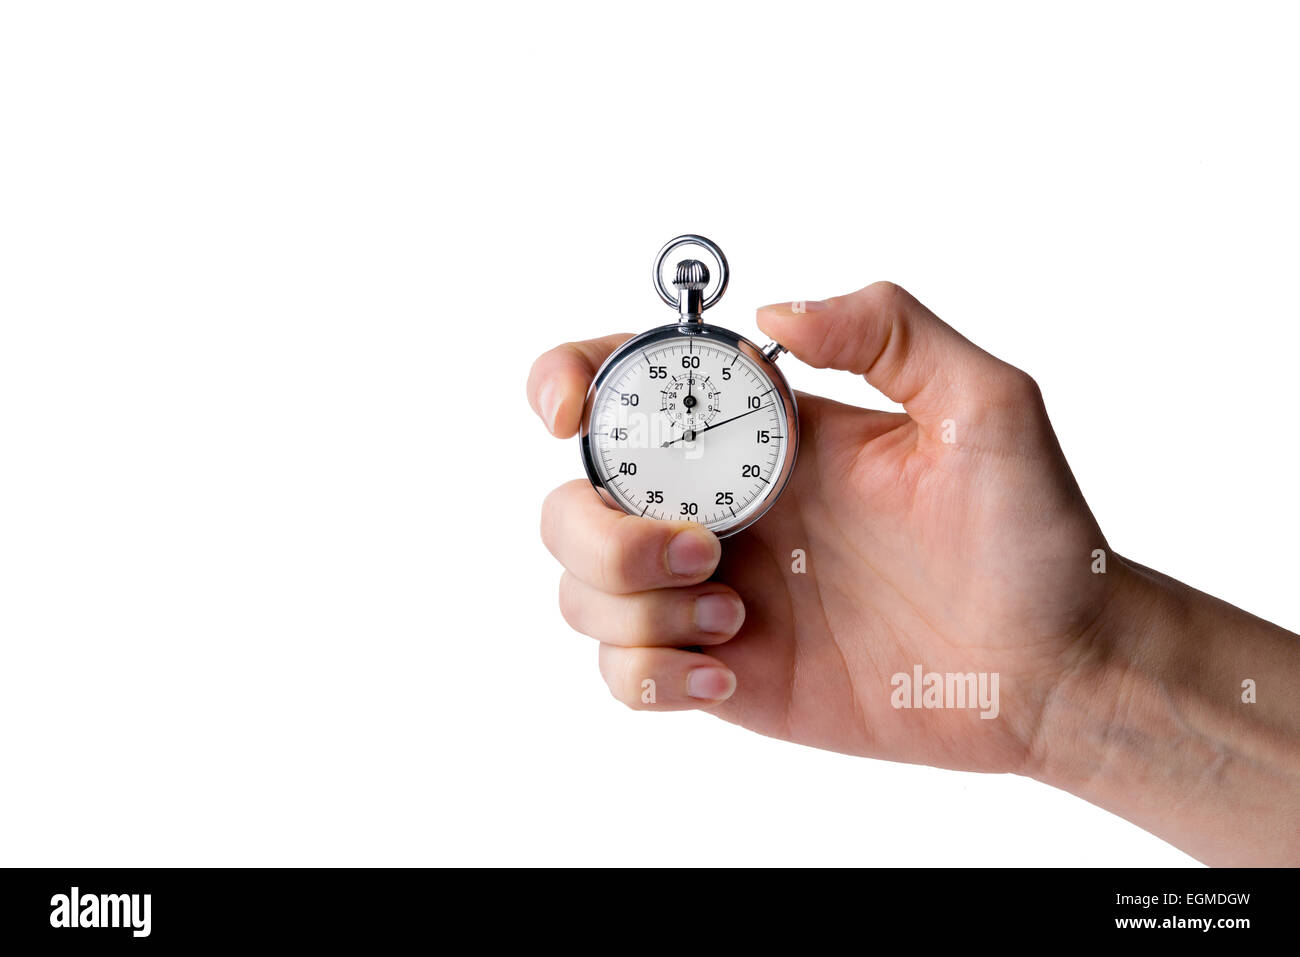 stopwatch hold in hand, button pressed, white background - Stock Image